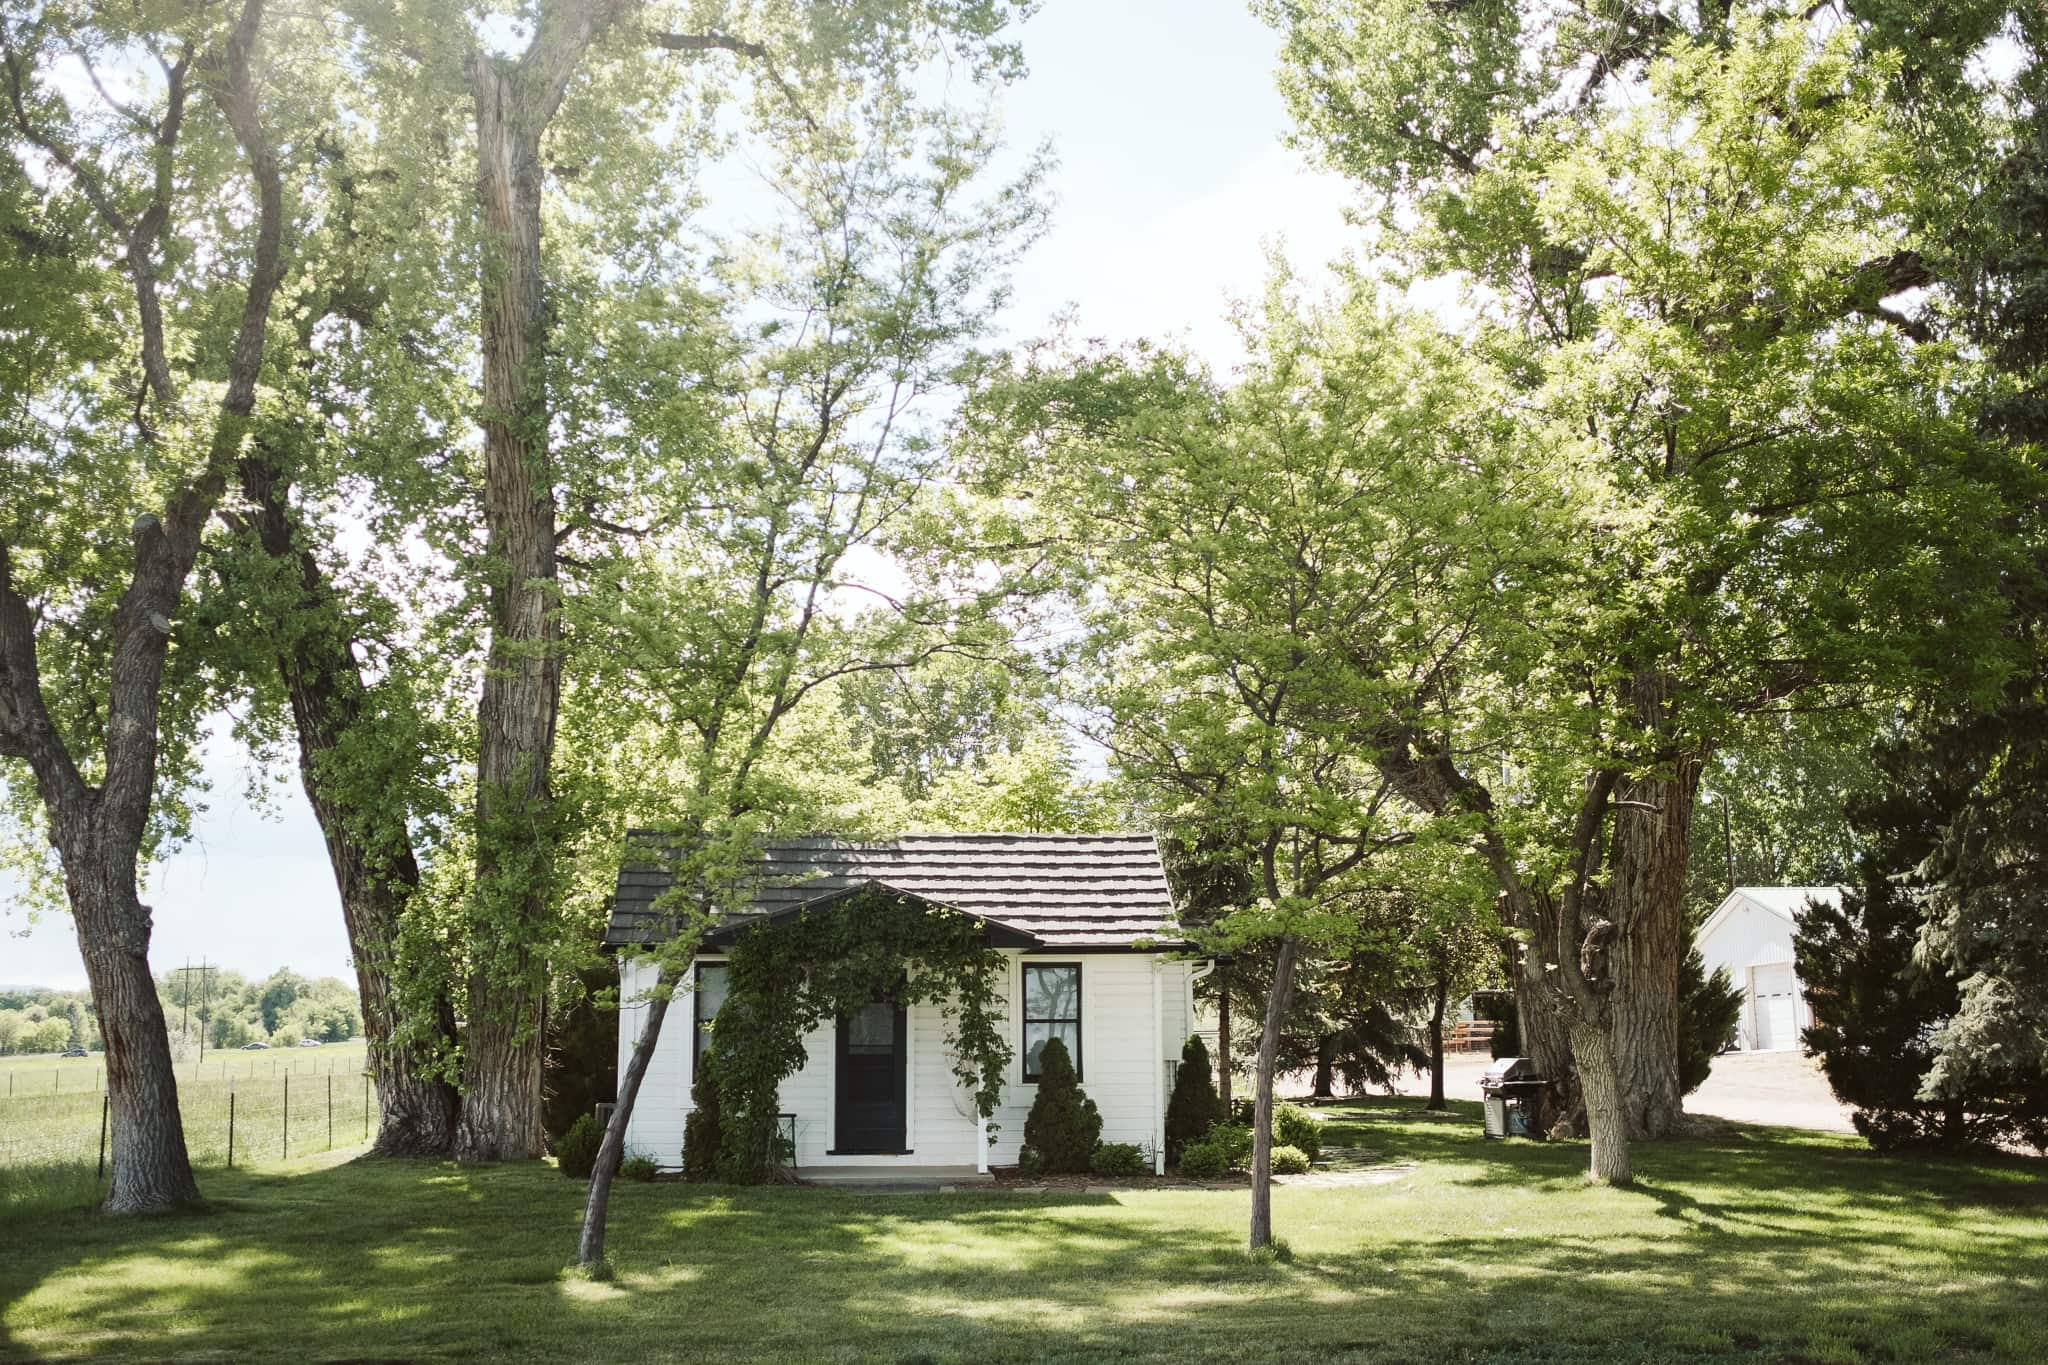 milston-well-farm-wedding-venue-boulder-4